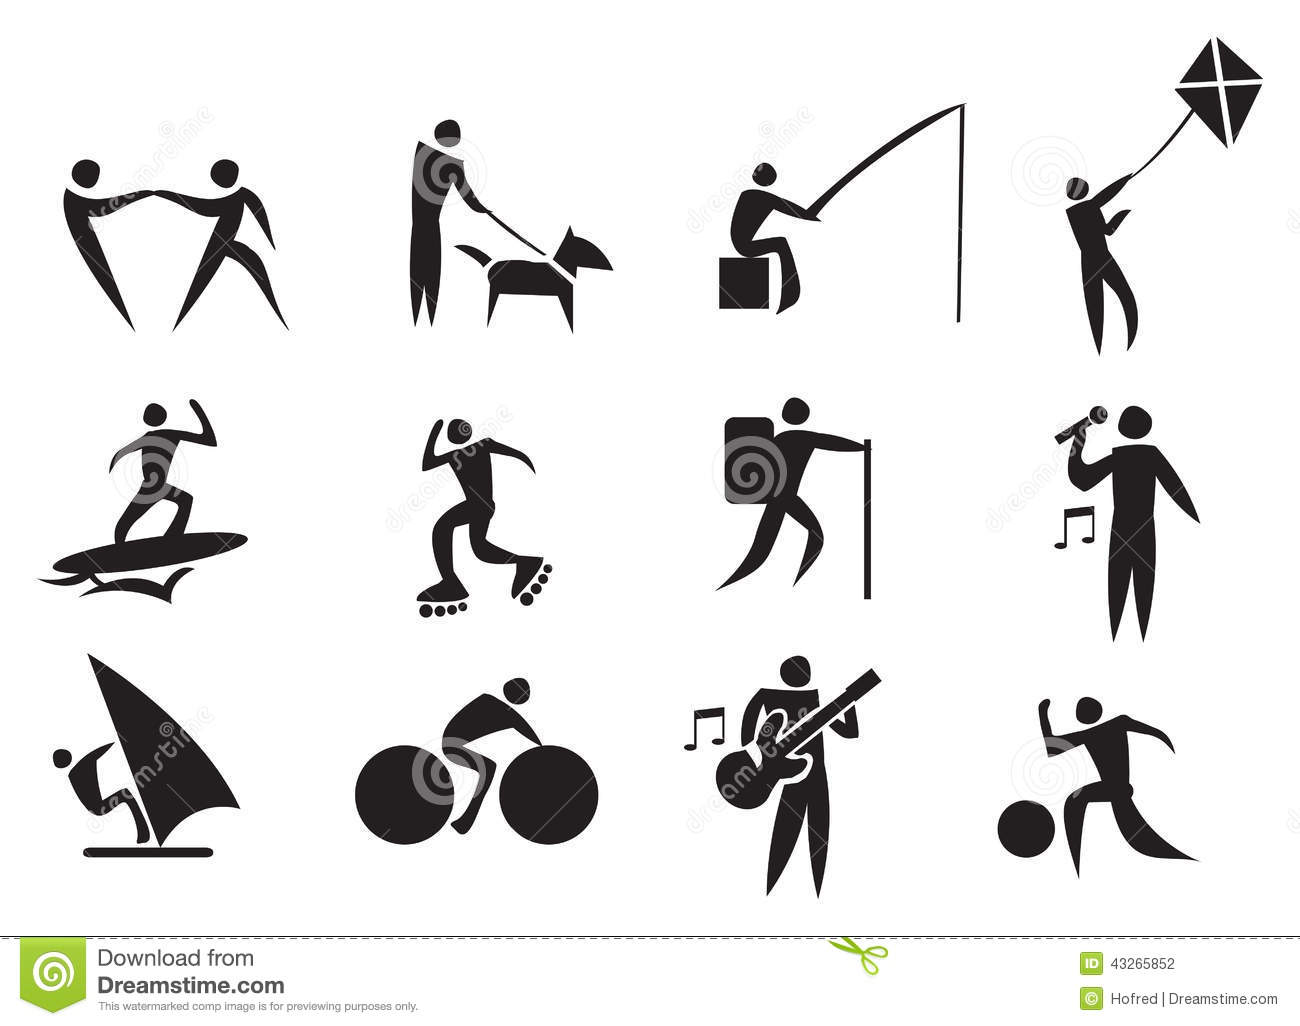 Image of Person Doing Leisure Activity